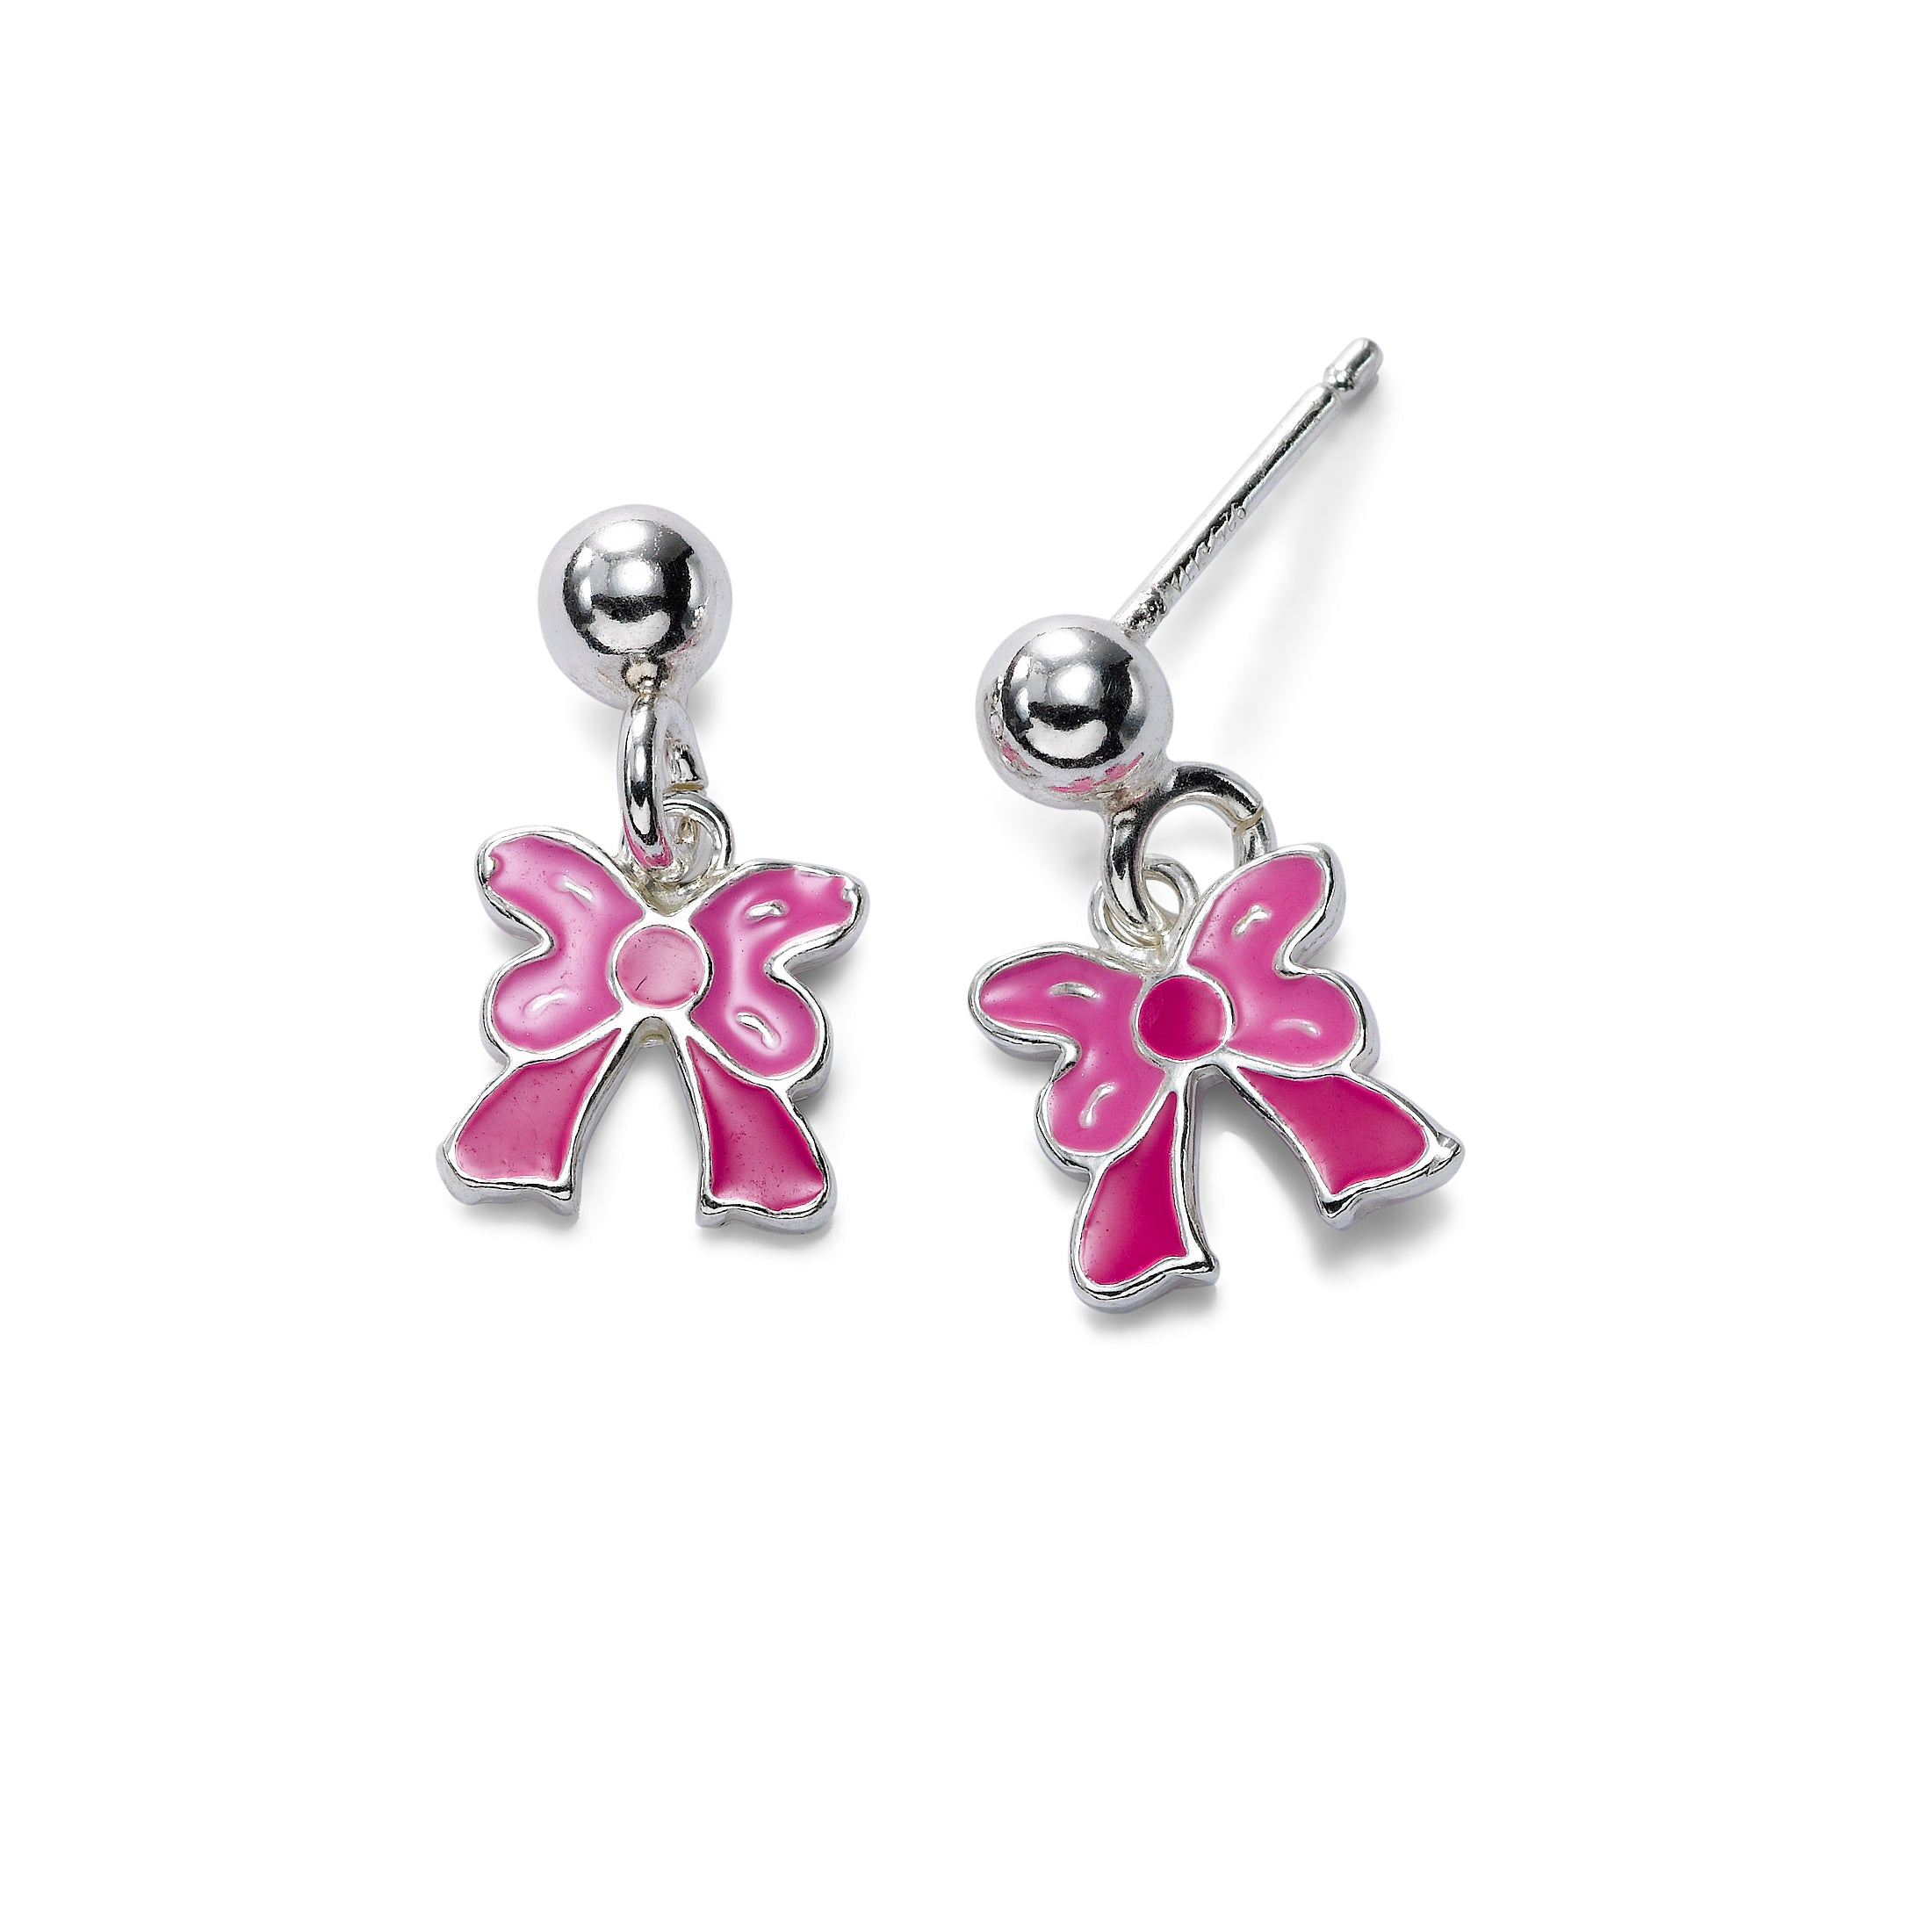 Child's Enamel Pink Bow Drop Earrings, Sterling Silver